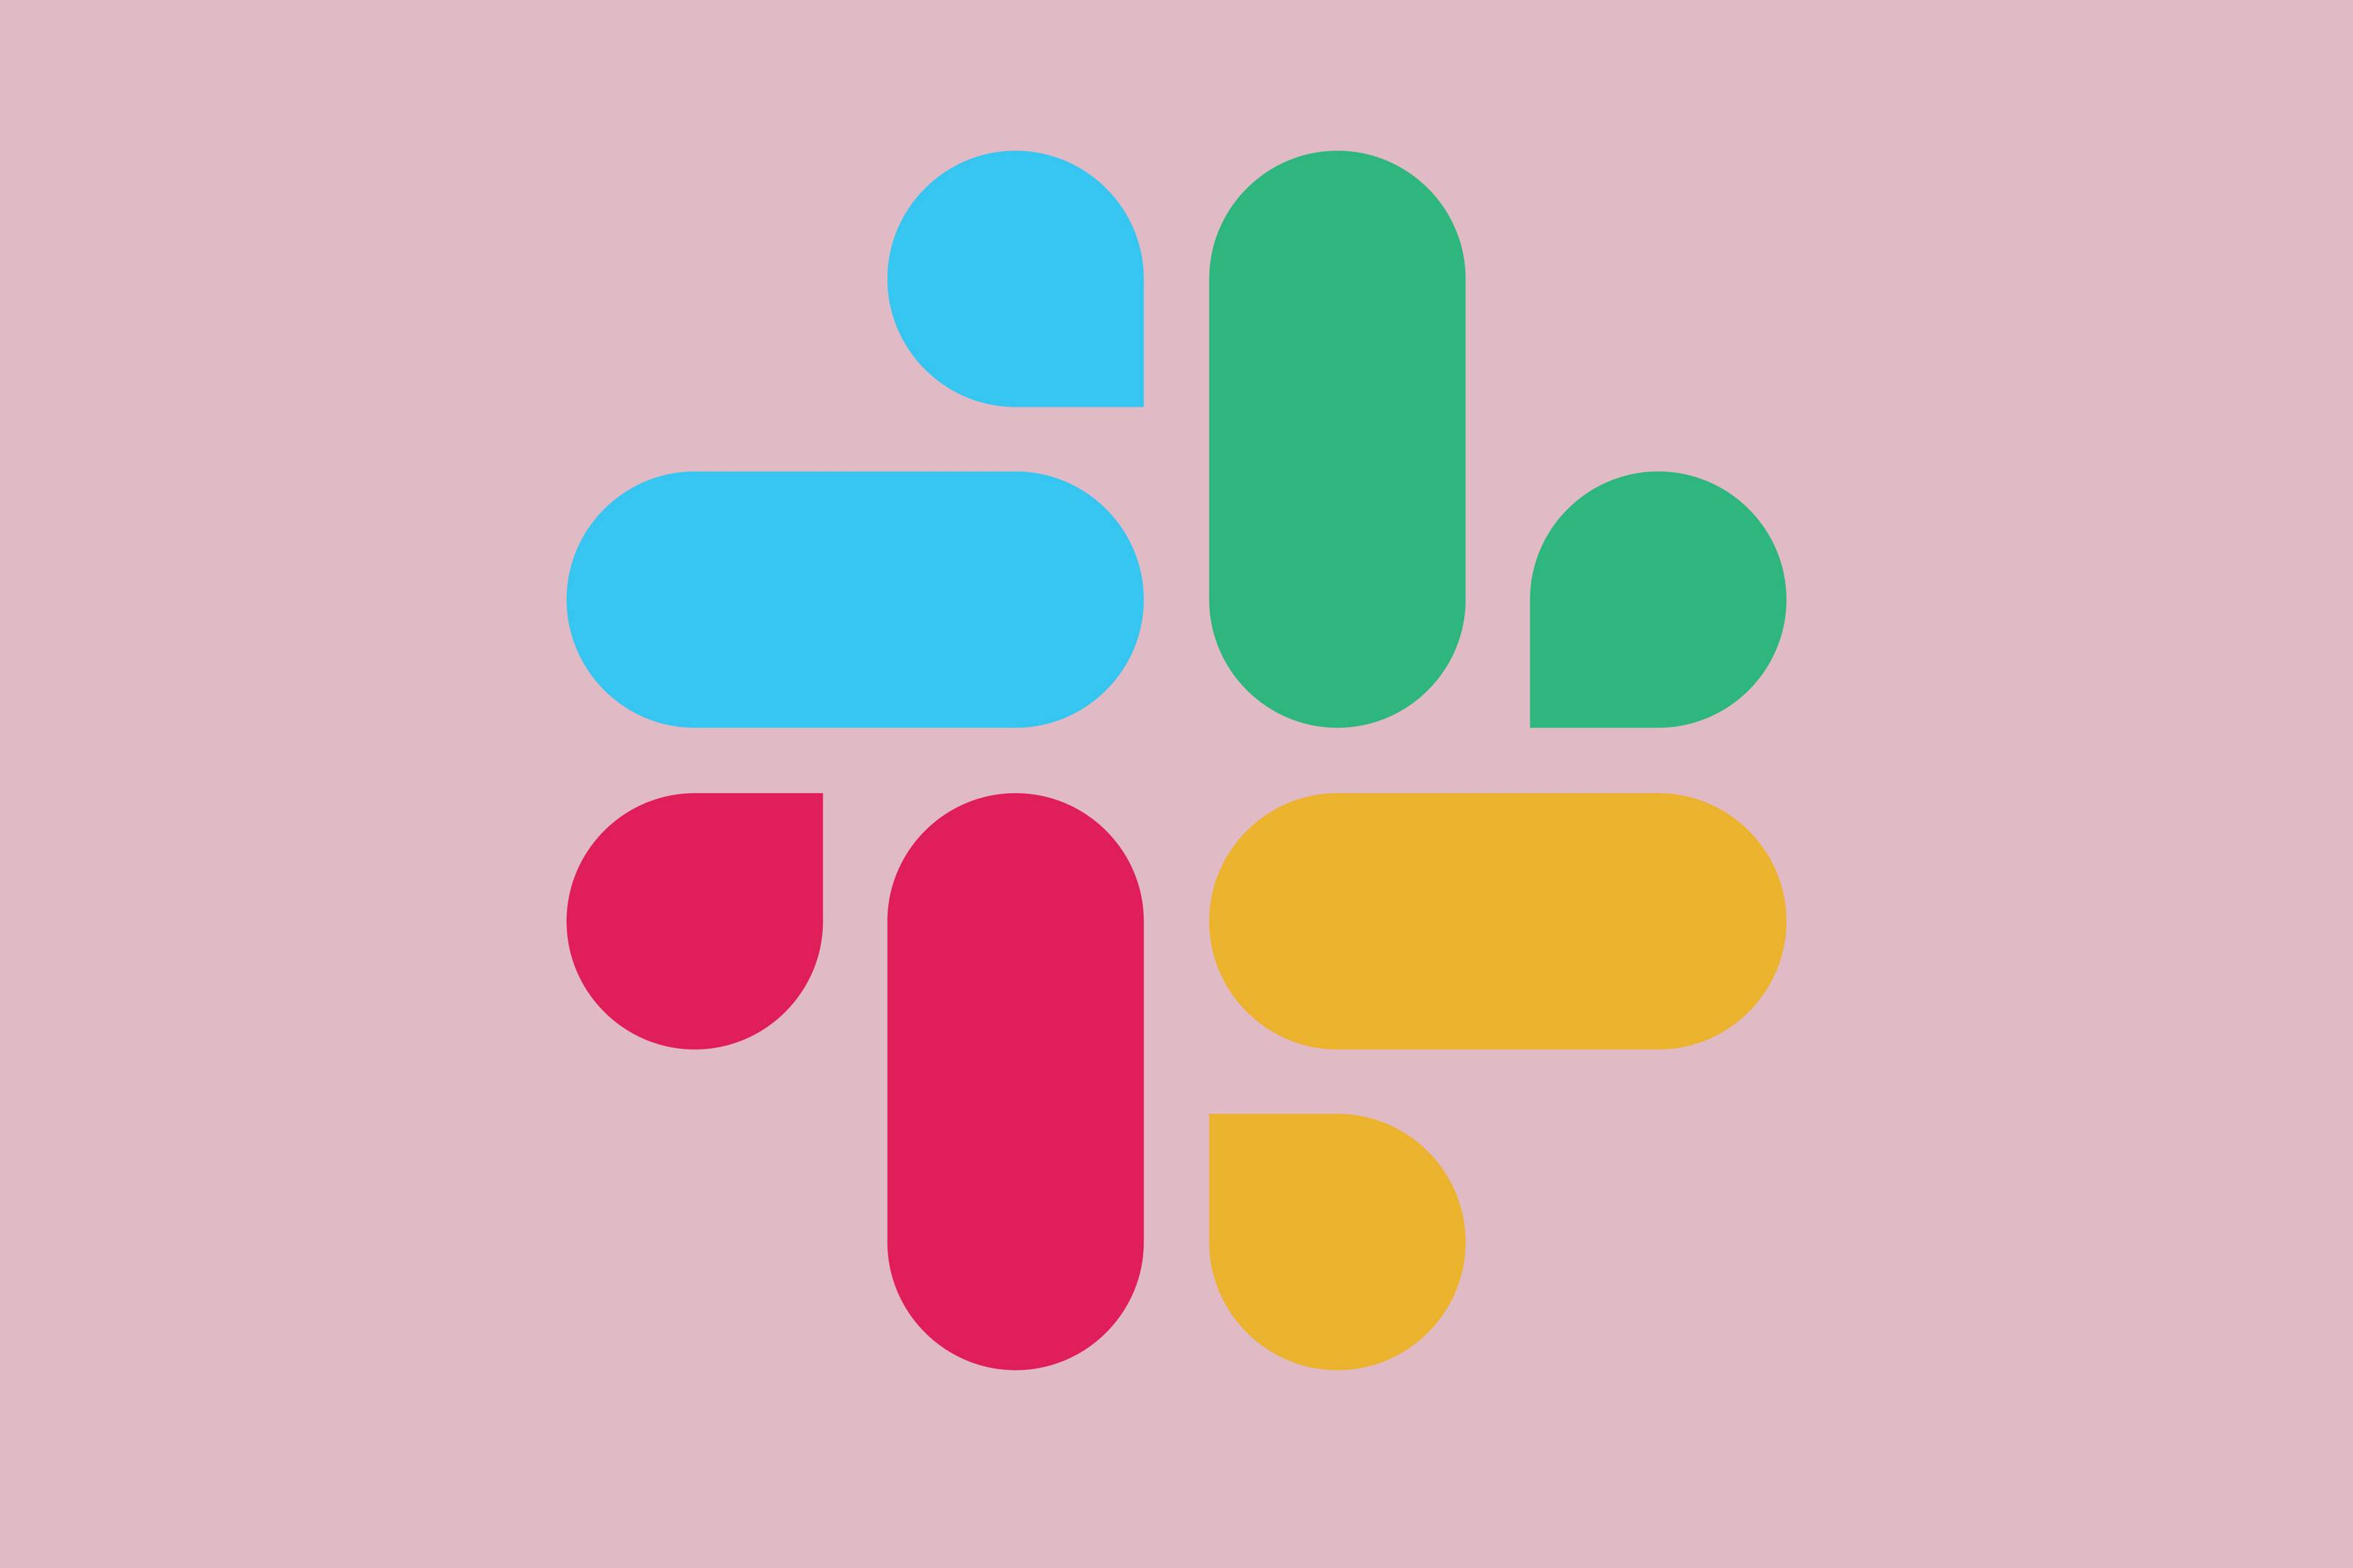 Slack Logo - At least Slack's new logo doesn't look like artful genitals | WIRED UK